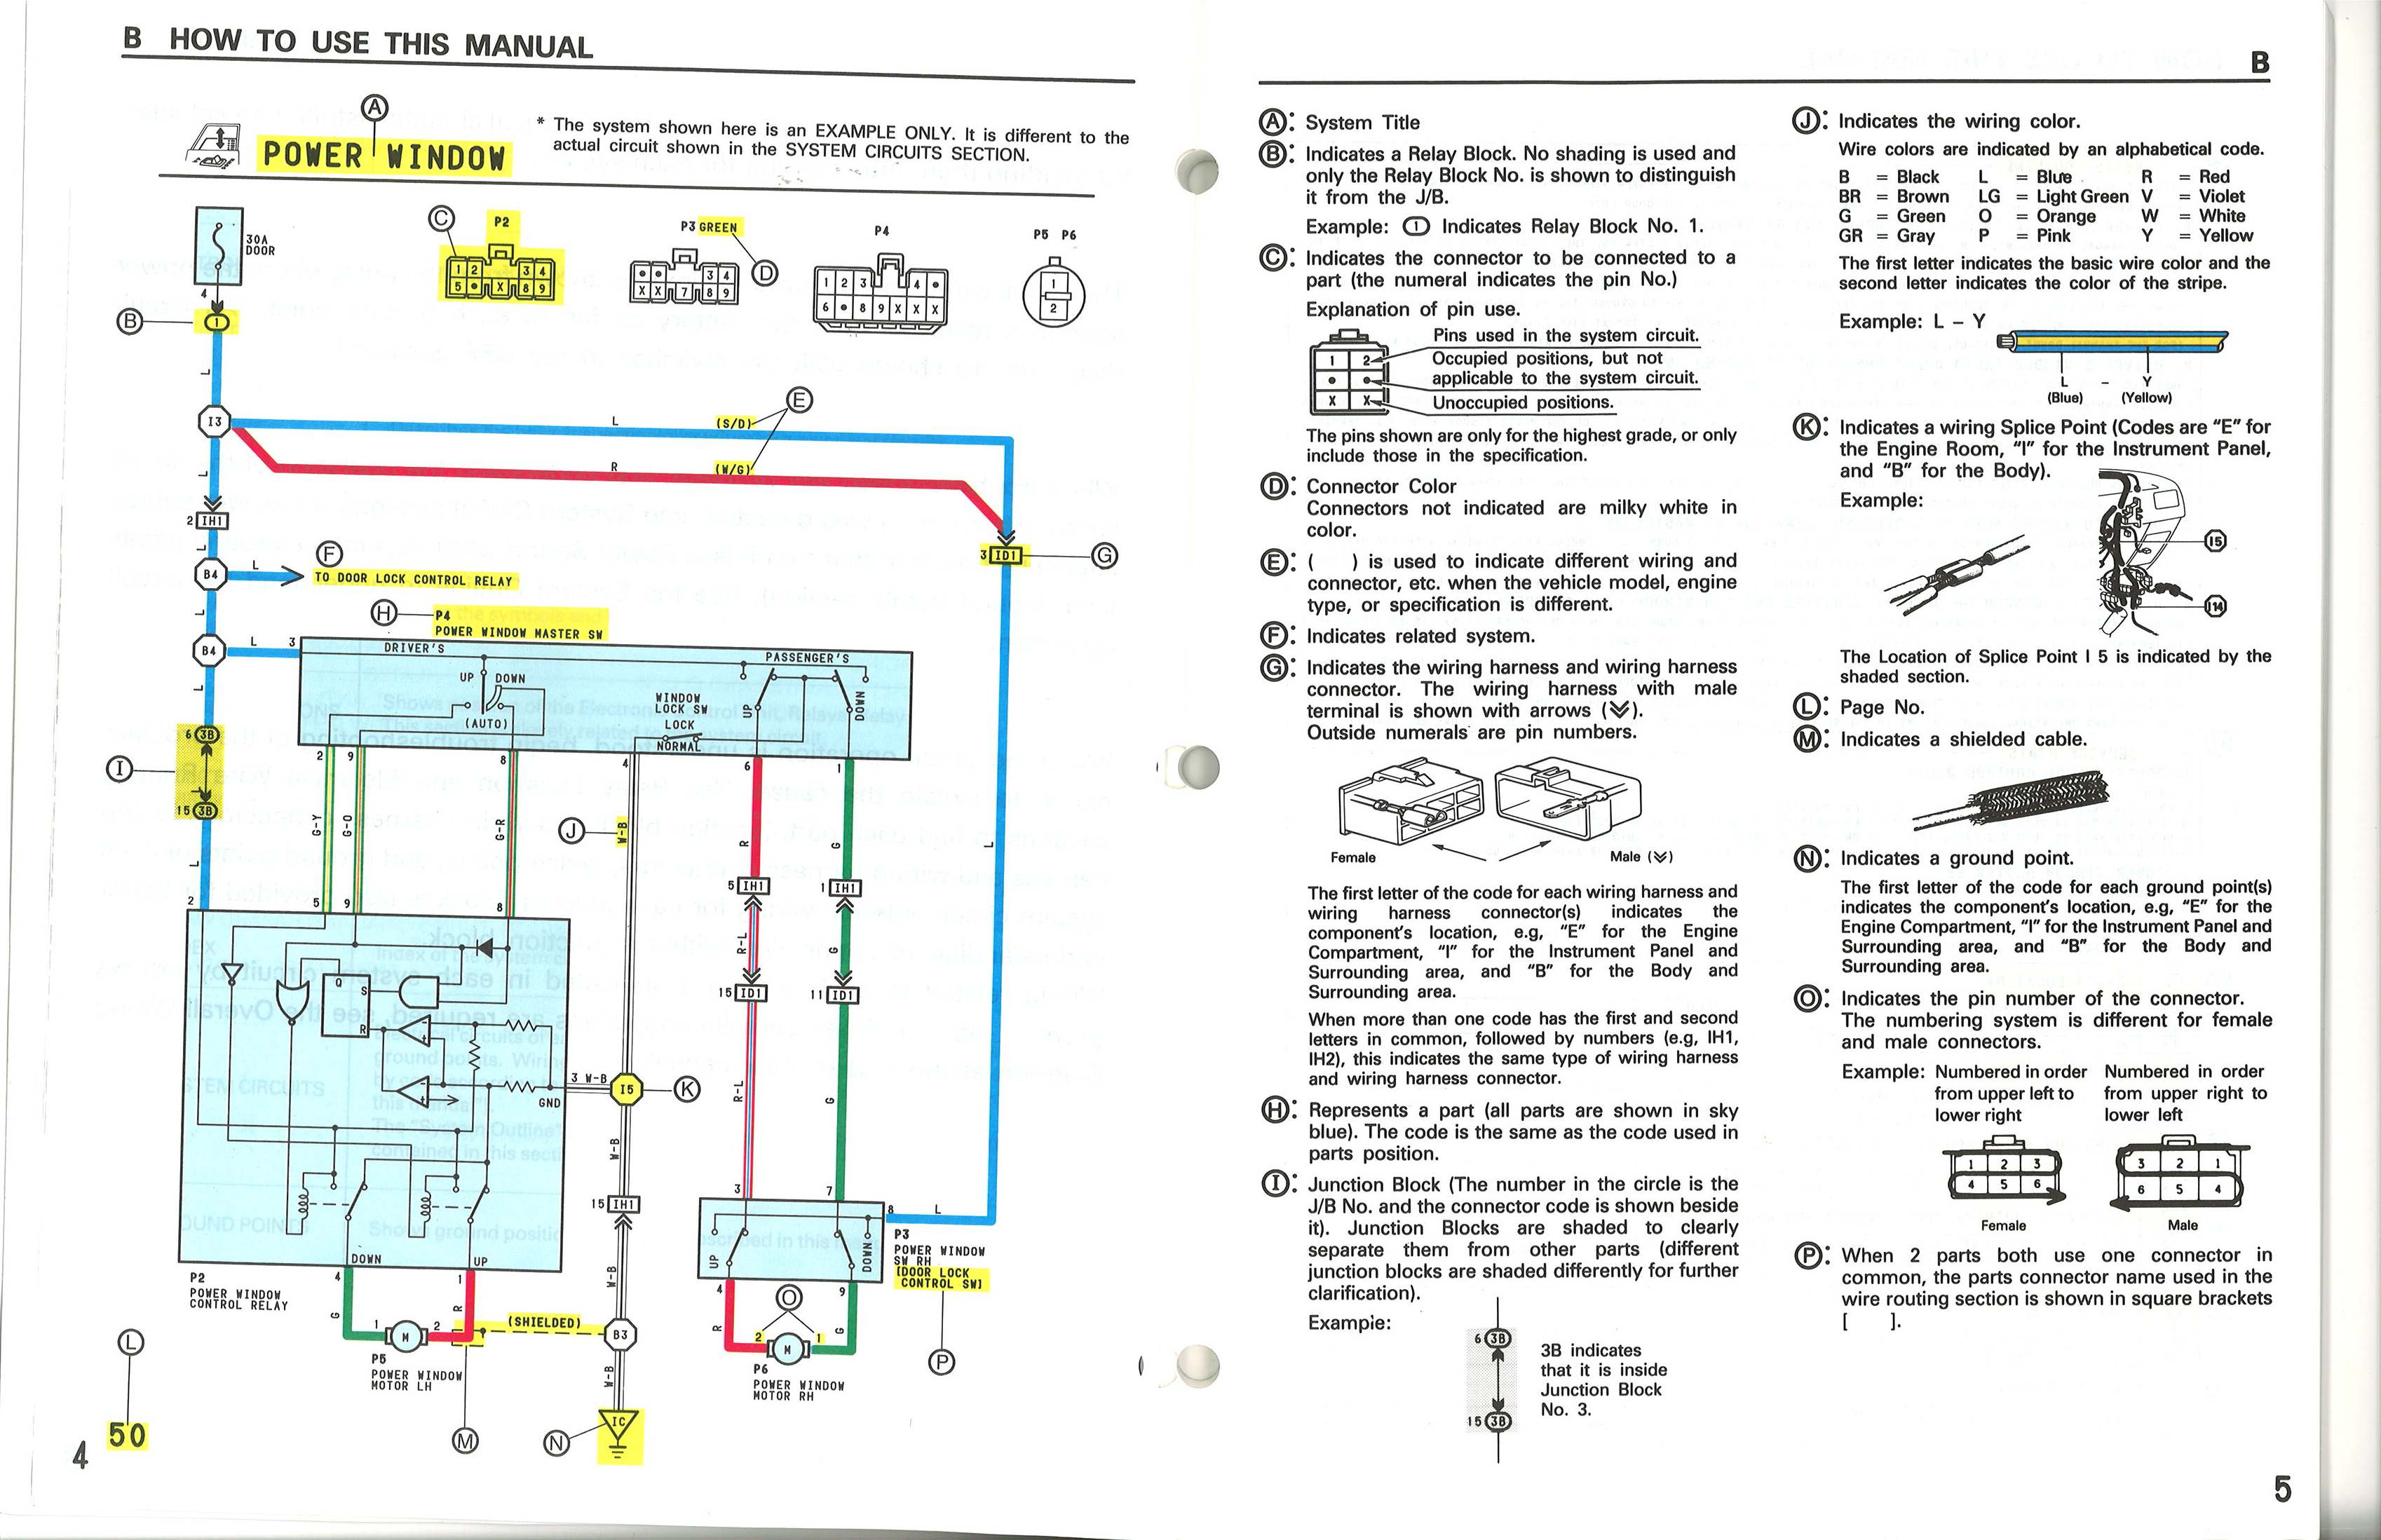 http://www.snjschmidt.com/wiring/how_to_use_1.jpg